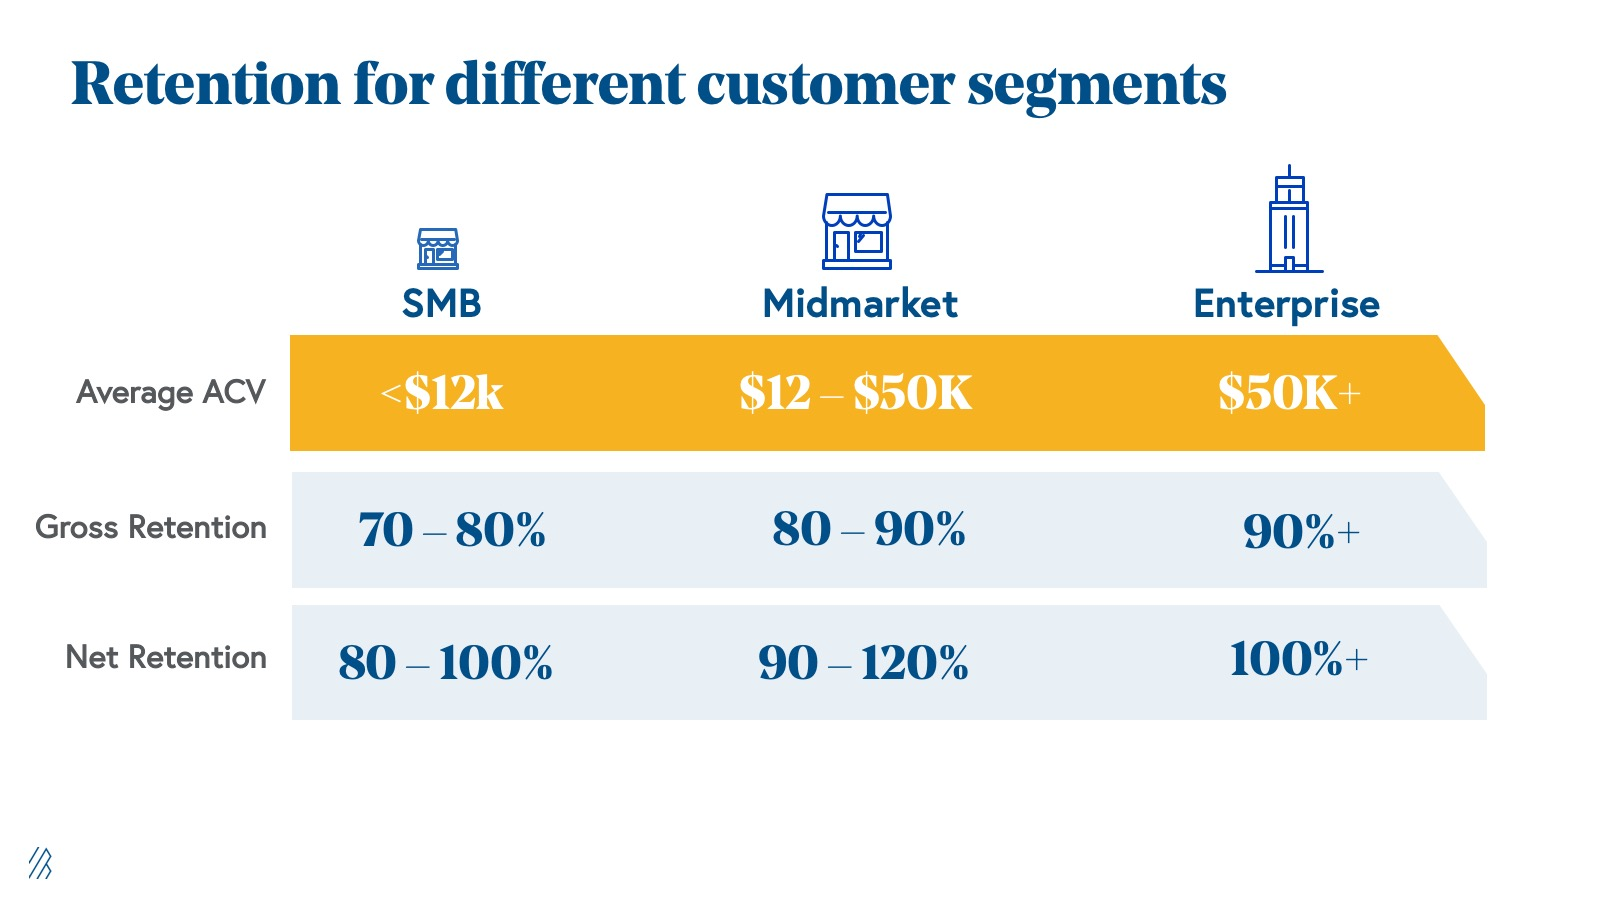 Retention for different customer segments.